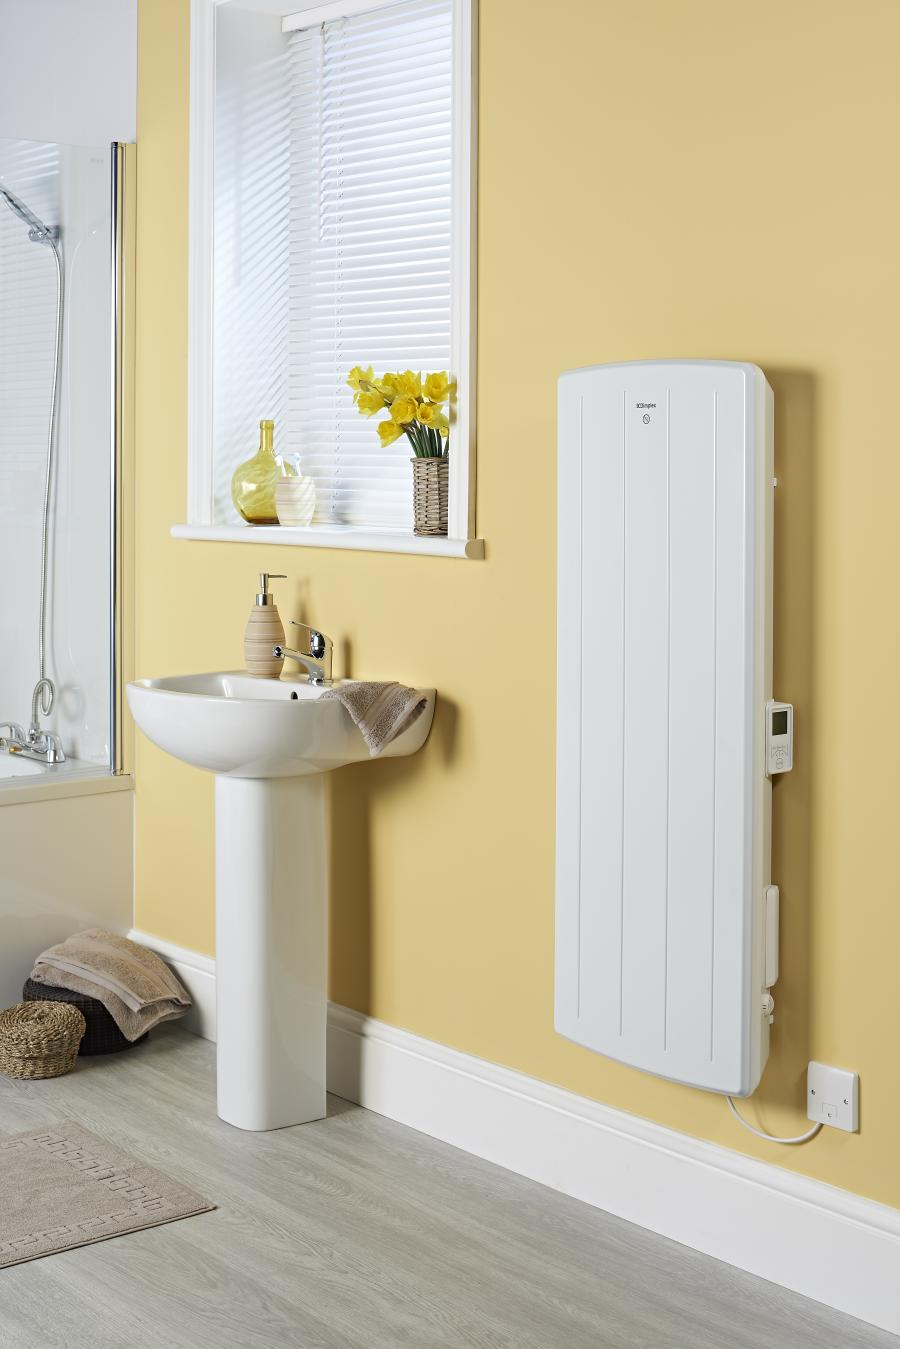 Small Bathroom Electric Wall Heaters: BPH 1.00kW Bathroom Panel Heater